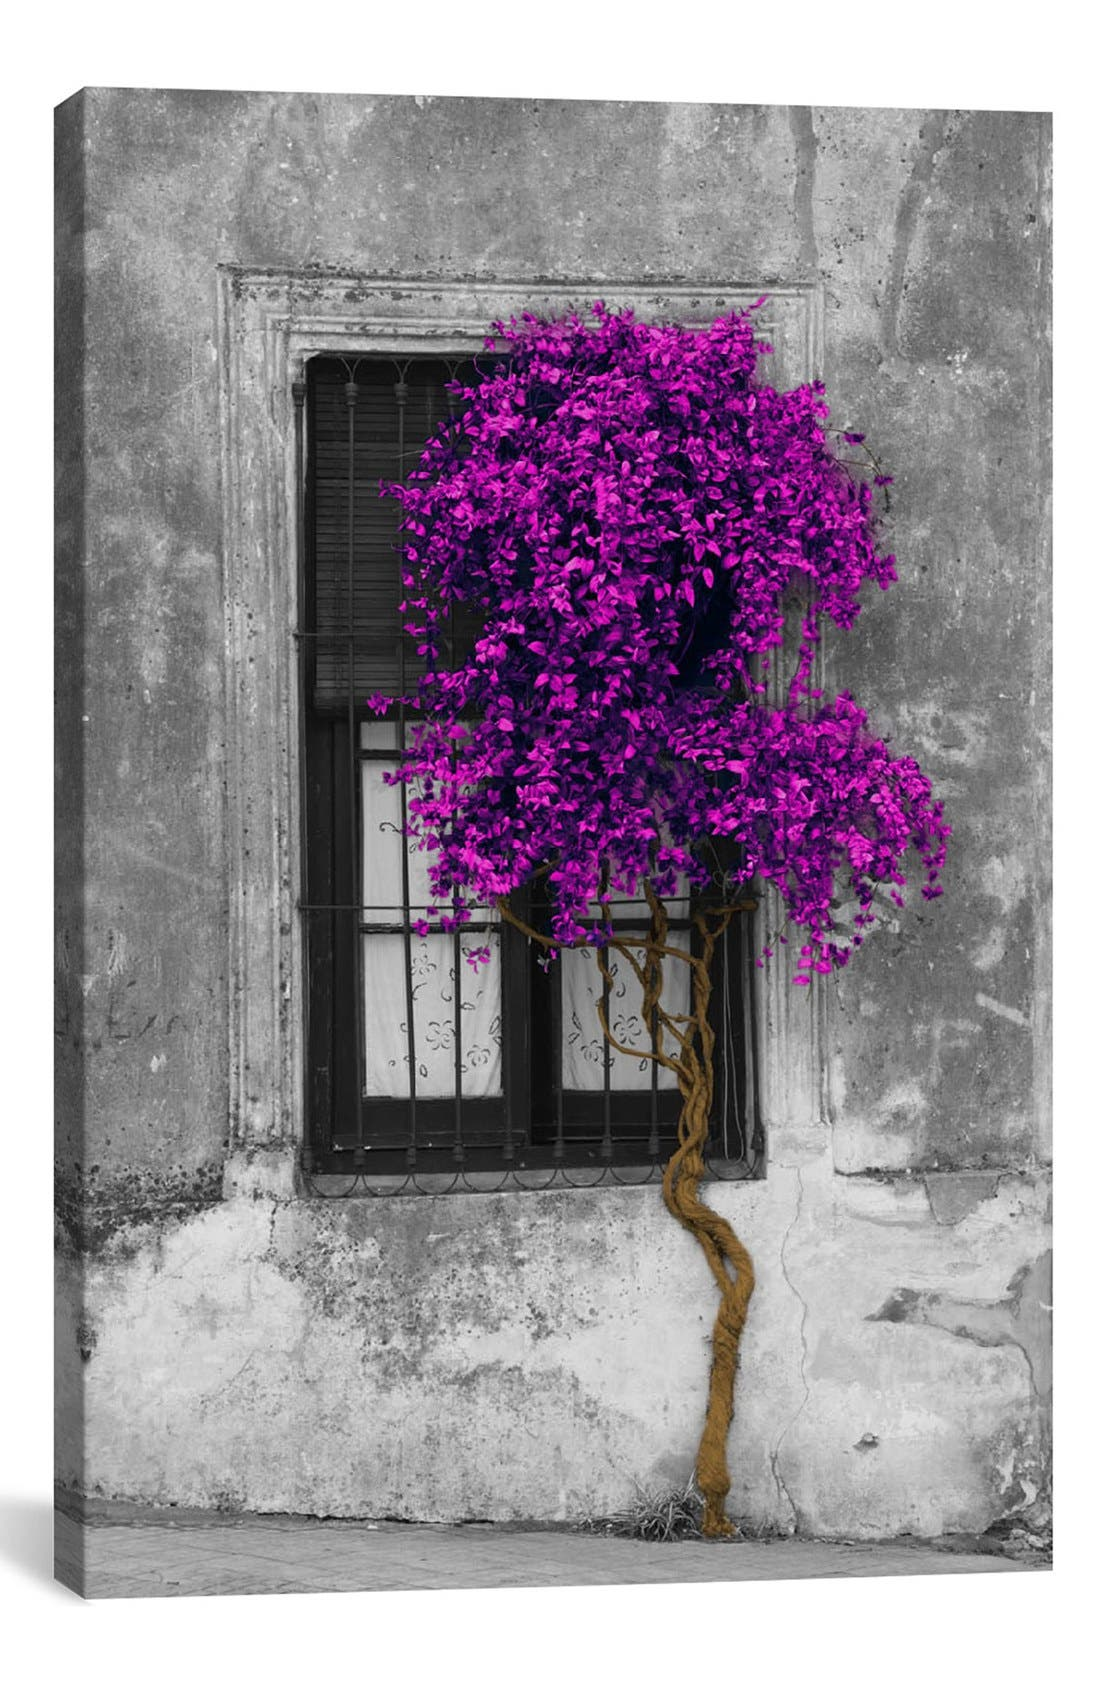 Main Image - iCanvas 'Tree in Front of Window' Giclée Print Canvas Art